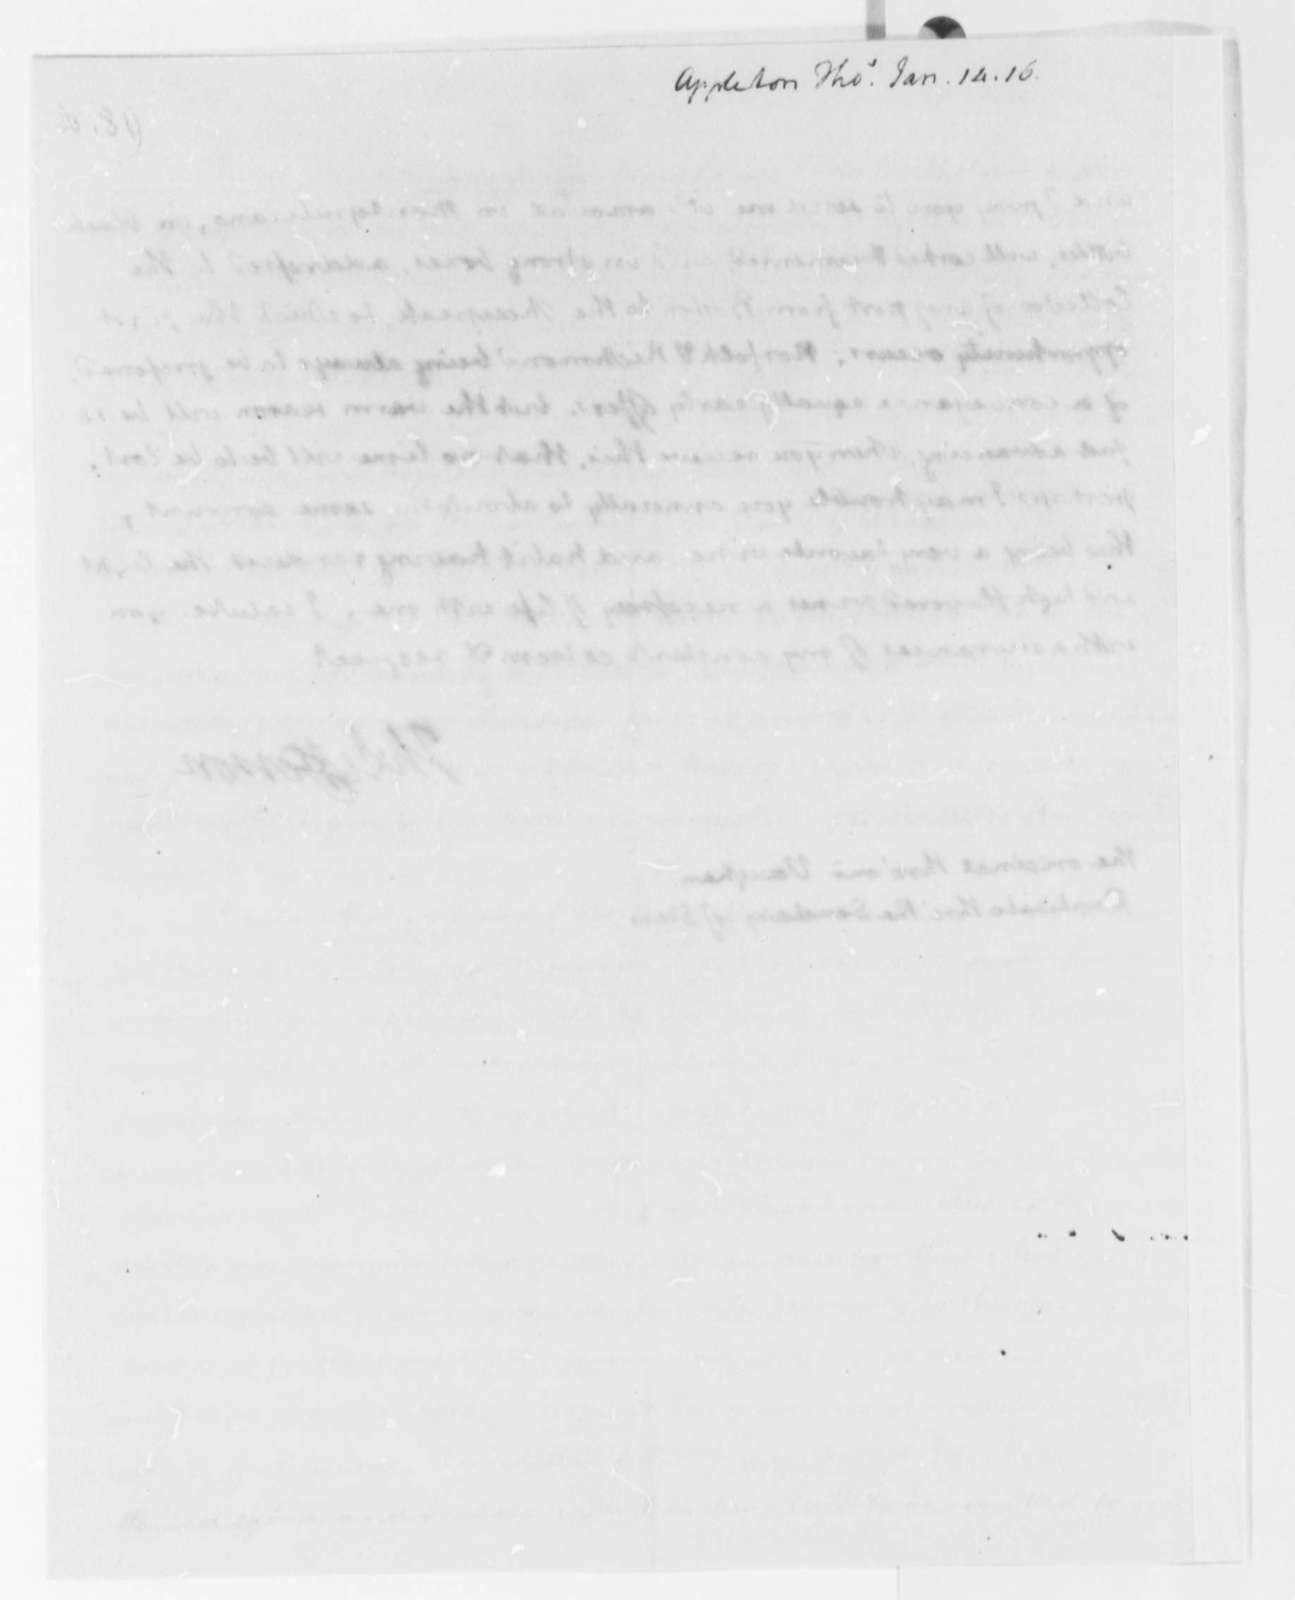 Thomas Jefferson to Thomas Appleton, January 14, 1816